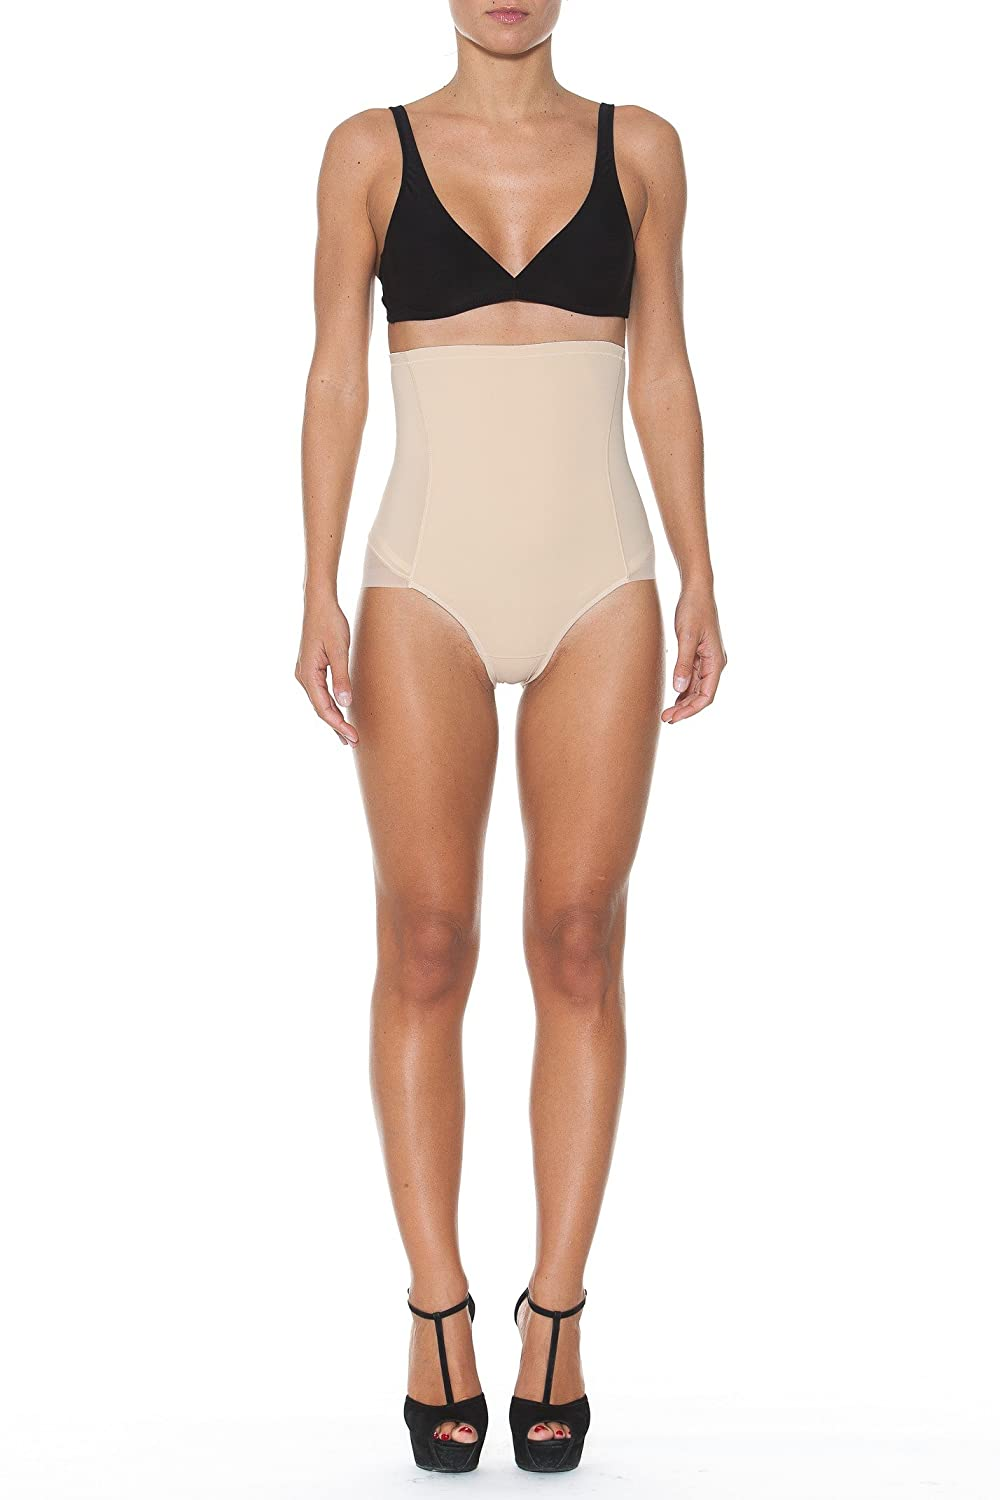 MYSHAPES 0033gea-rosa String Damen